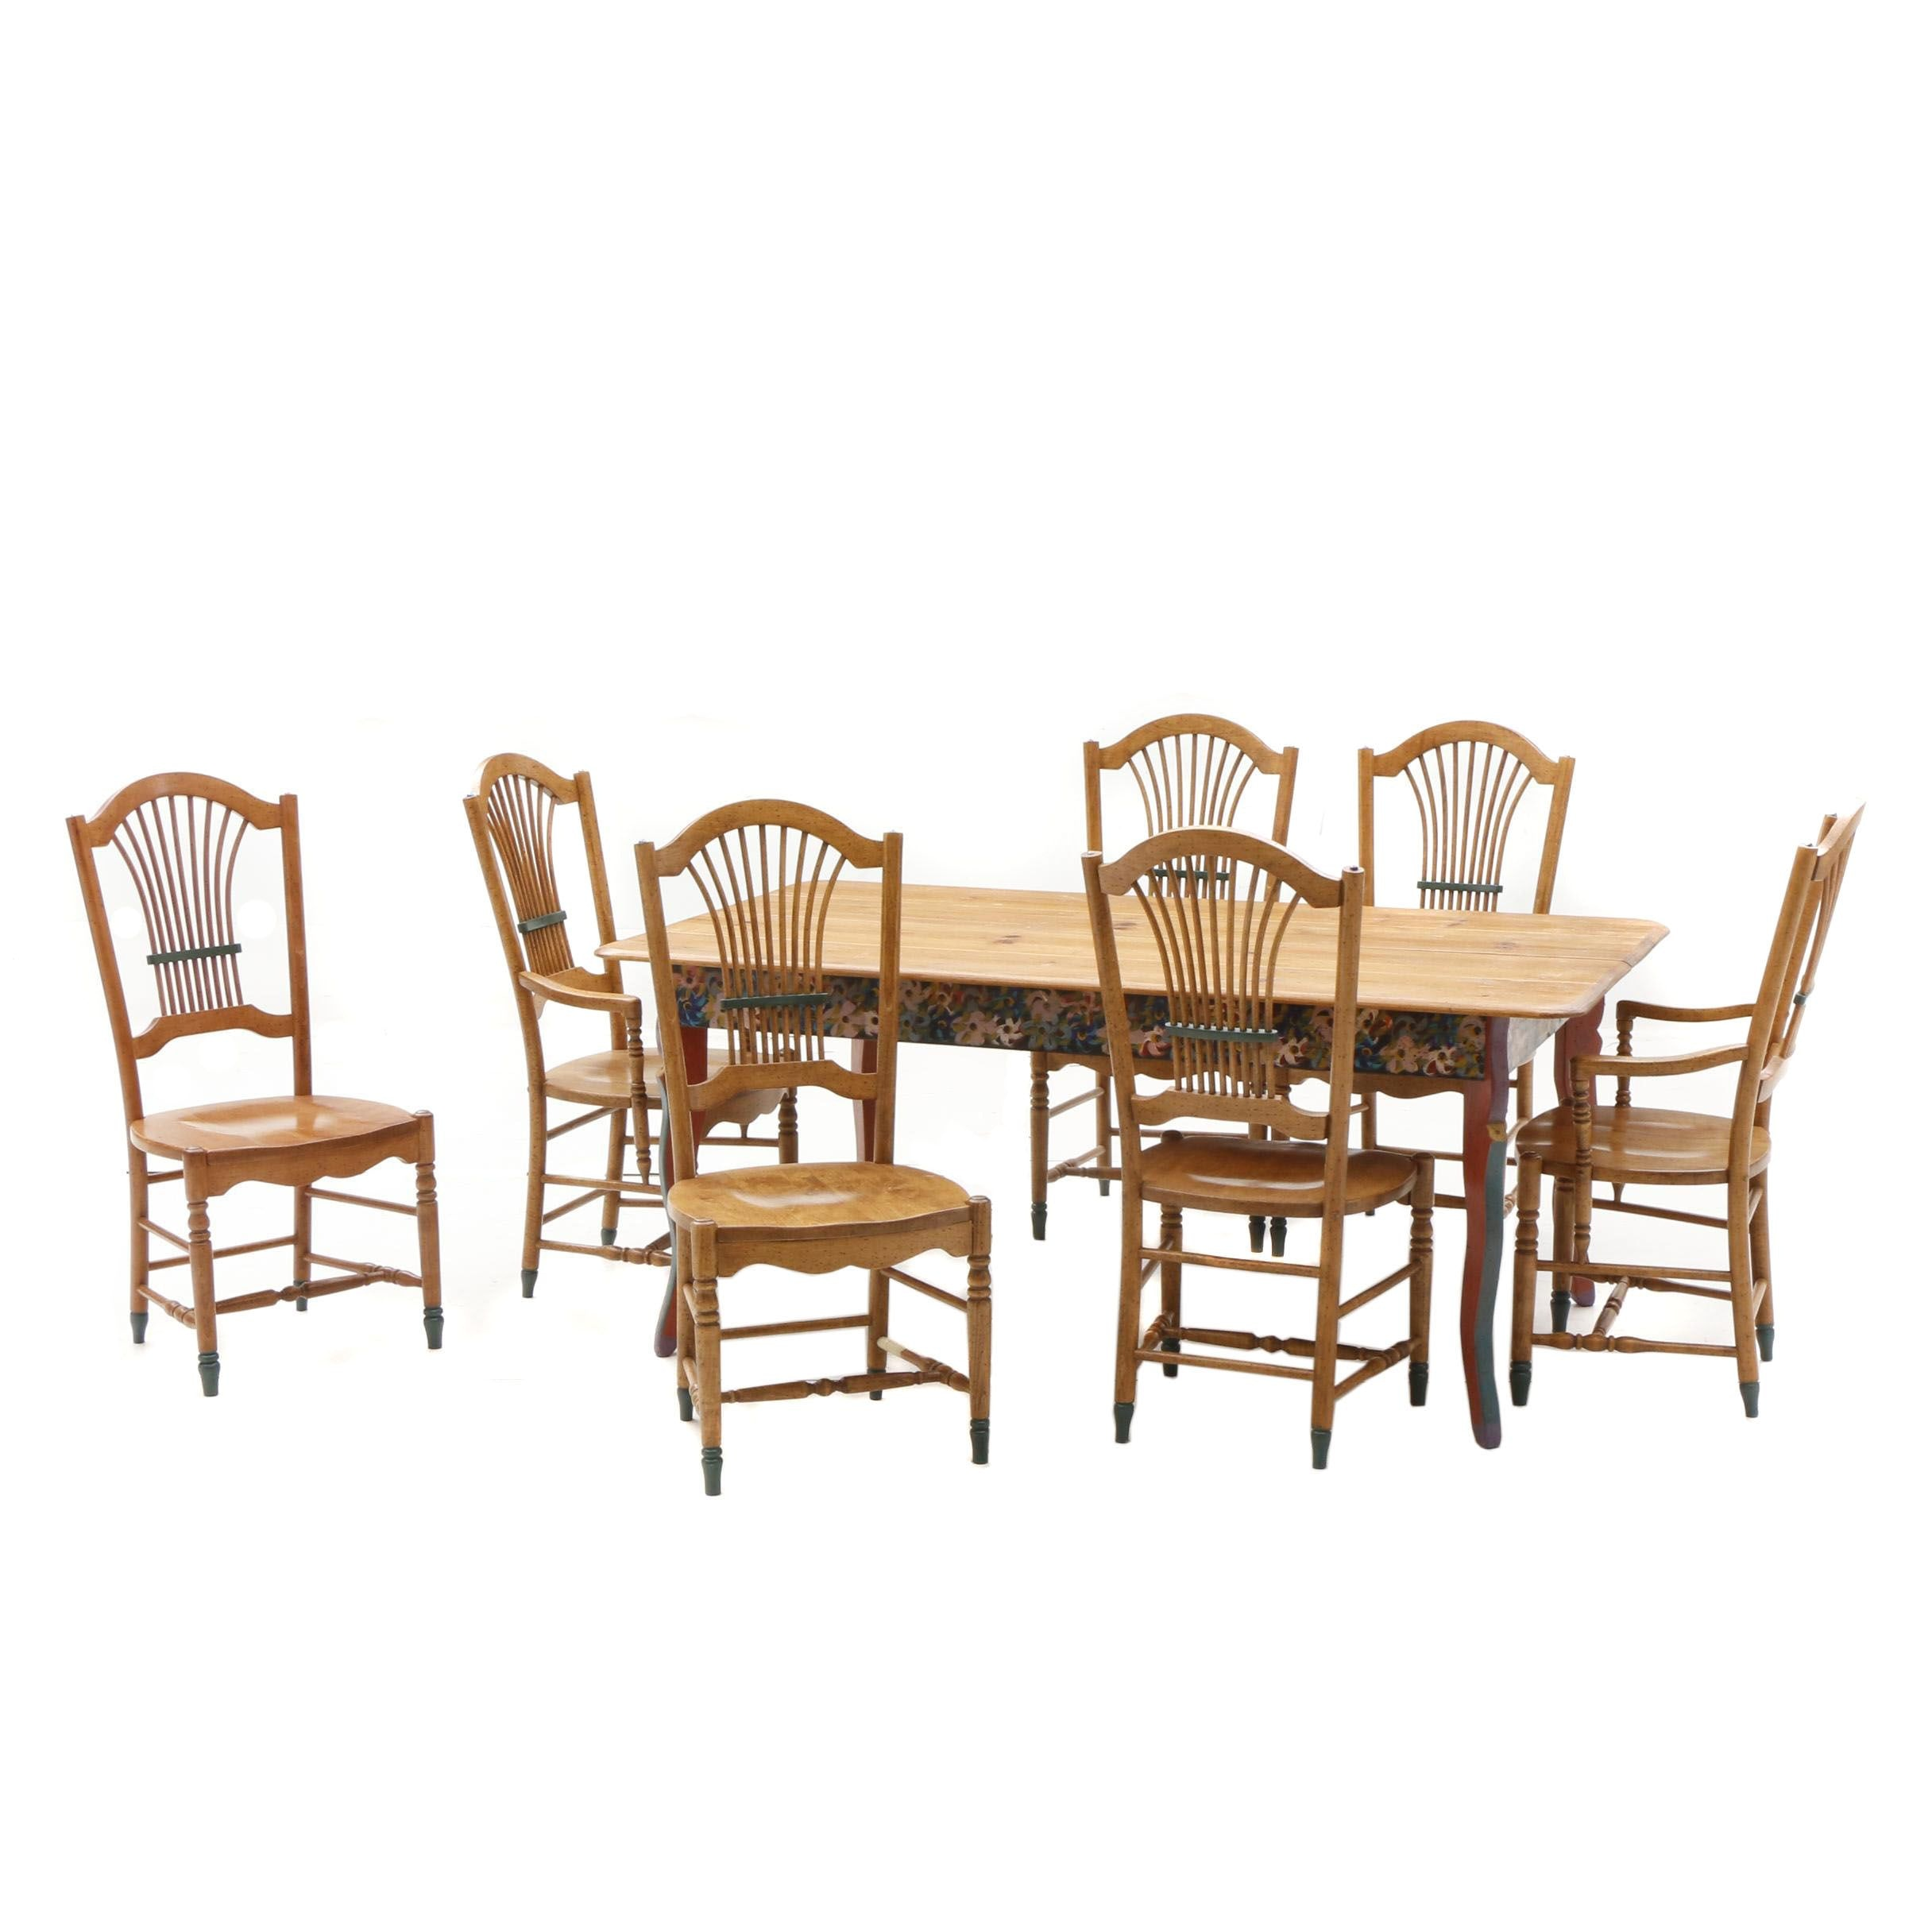 David Marsh Painted Pine Dining Table and Six Chairs